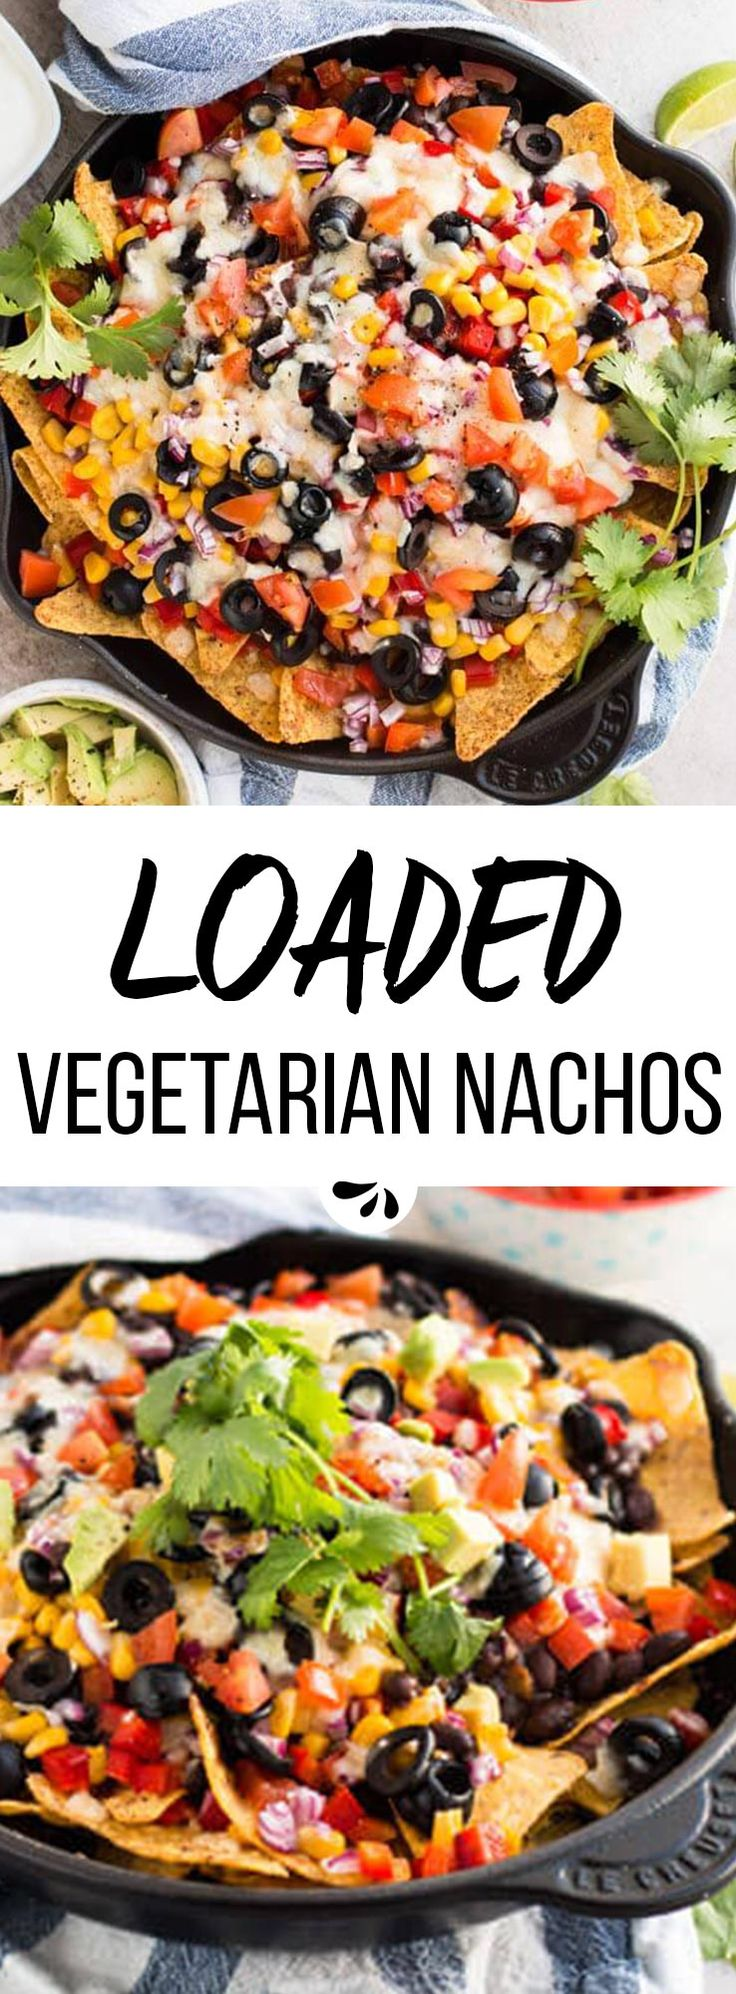 This loaded vegetarian nacho recipe has it all: The best Southwestern/Mexican flavors from black beans in chili sauce, cheese, olives, corn, tomatoes, sweet peppers and cilantro! They are quick and easy to make, baked in a skillet in the oven, full of healthy vegetables and great to feed a crowd at summer parties, on football sunday or for super bowl. Serve with a light dip and some fresh avocado!